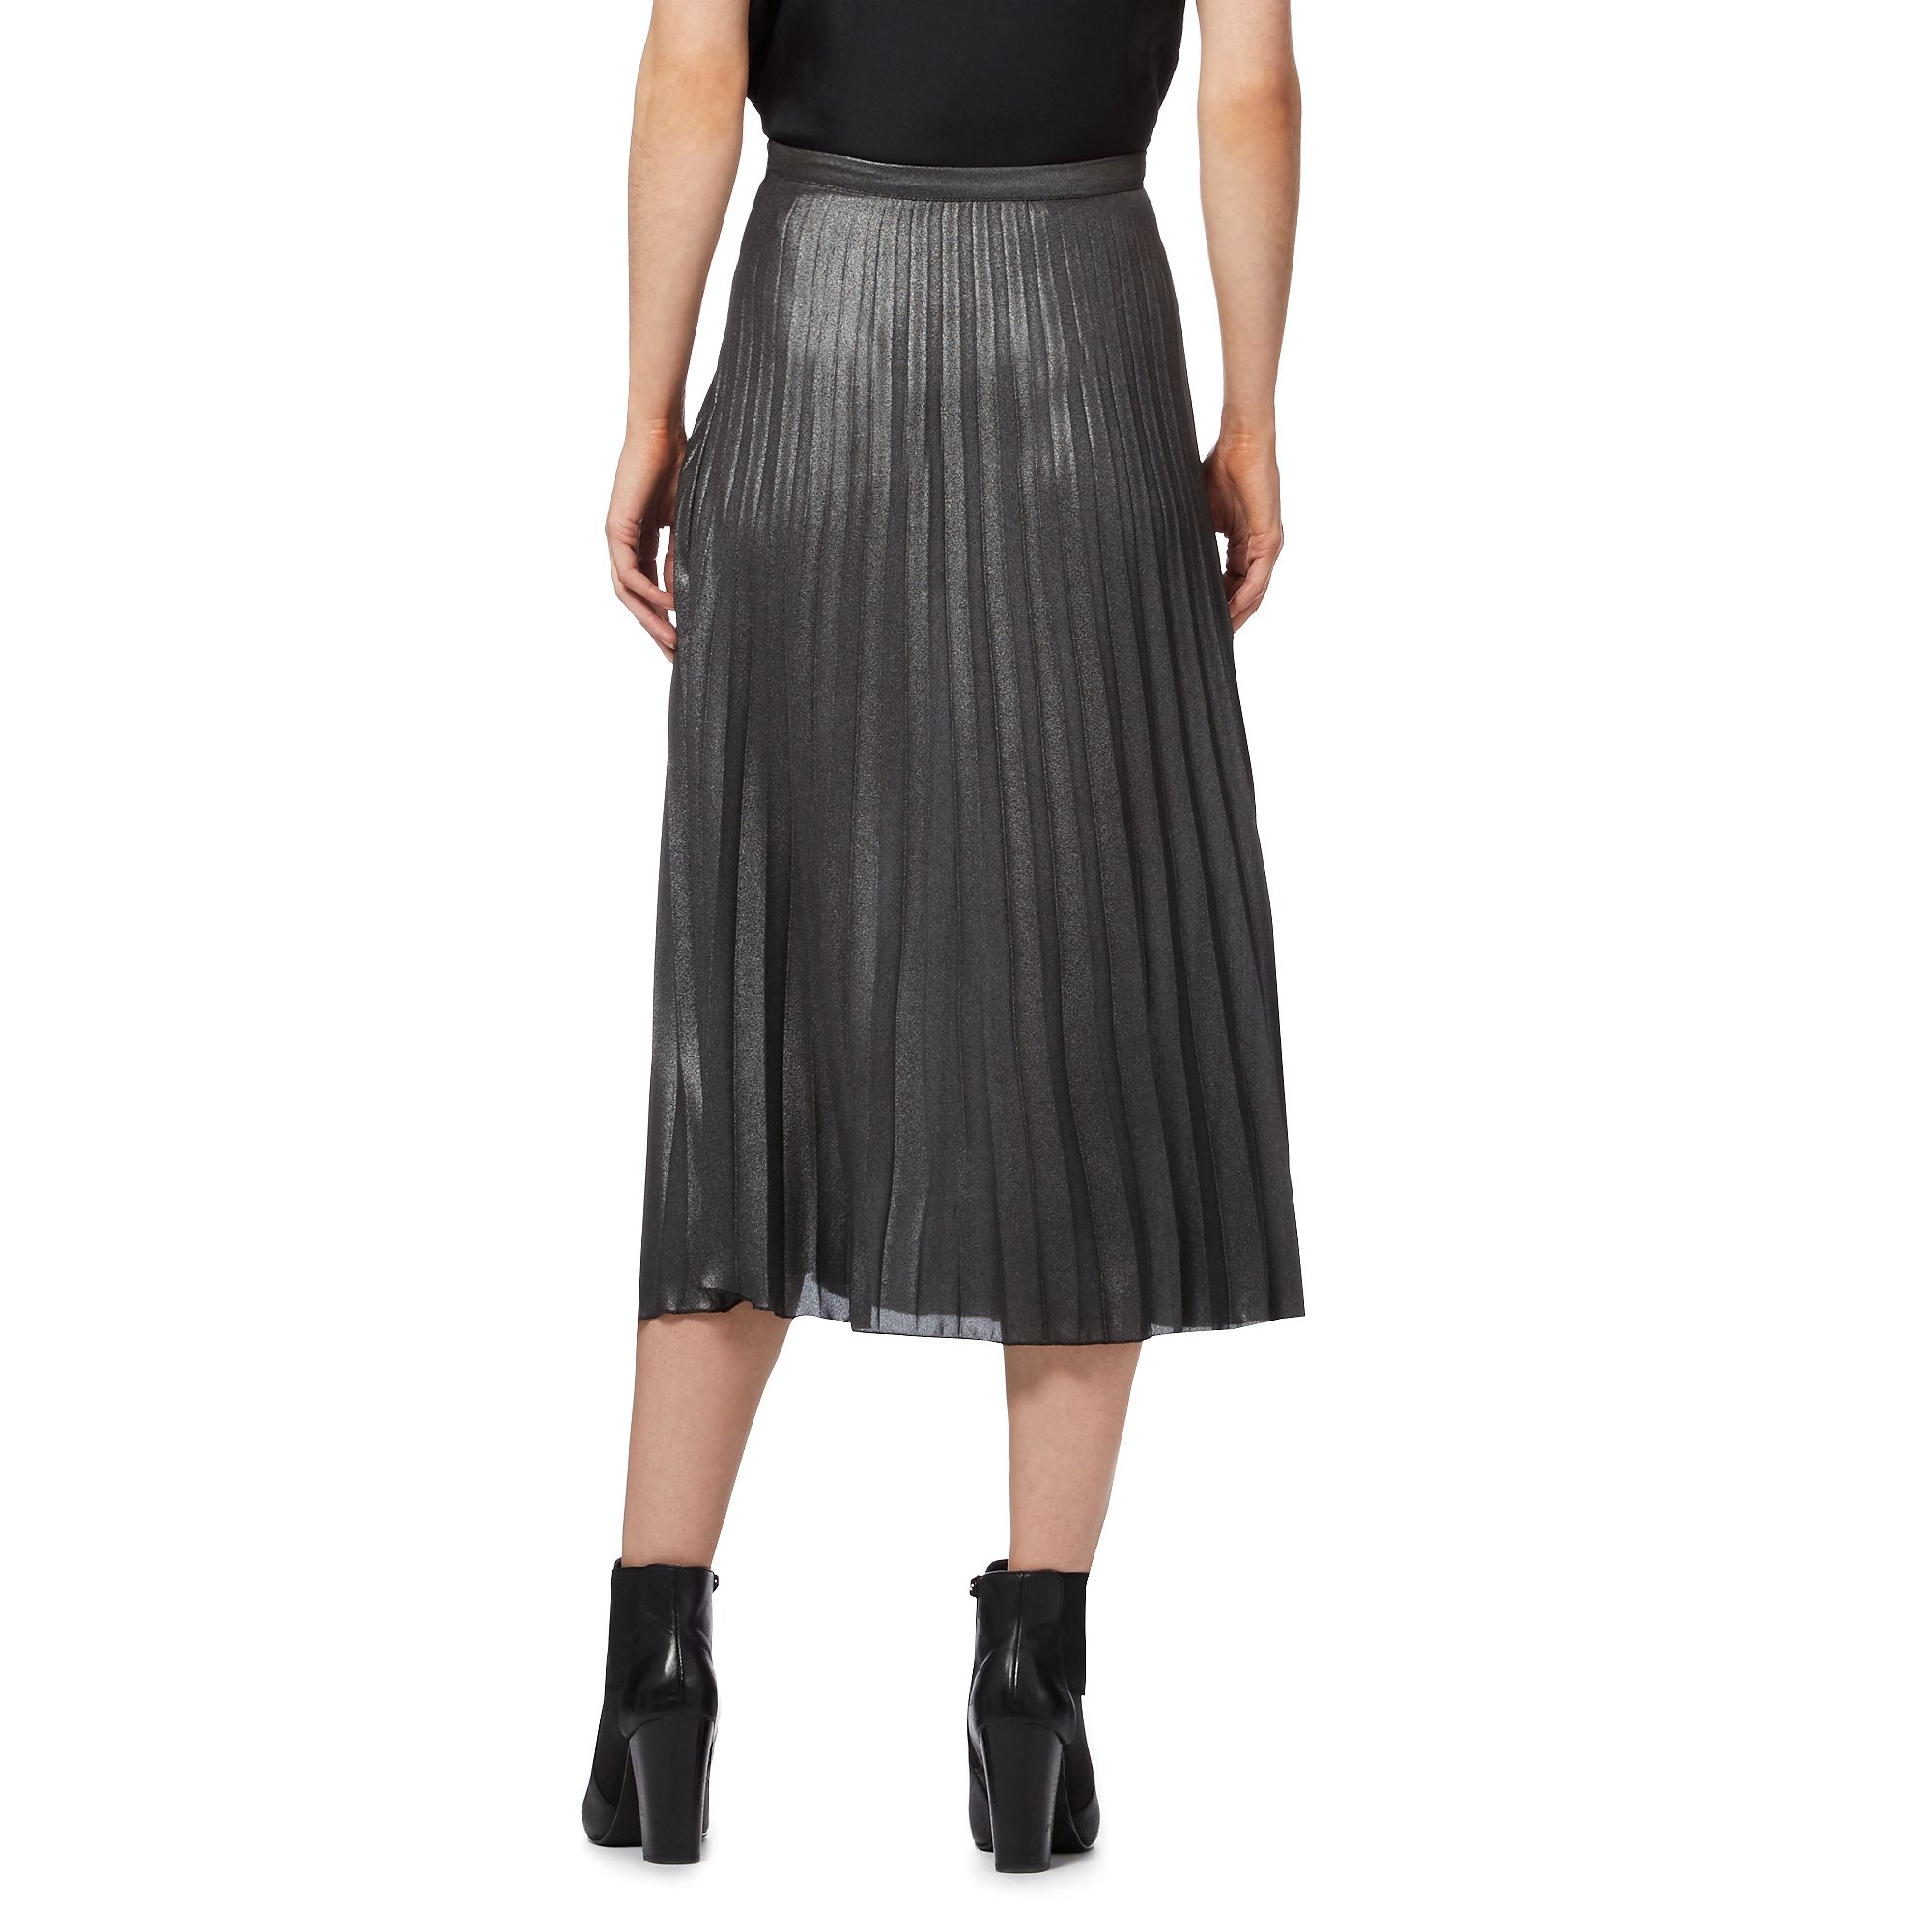 herring womens grey metallic pleat midi skirt